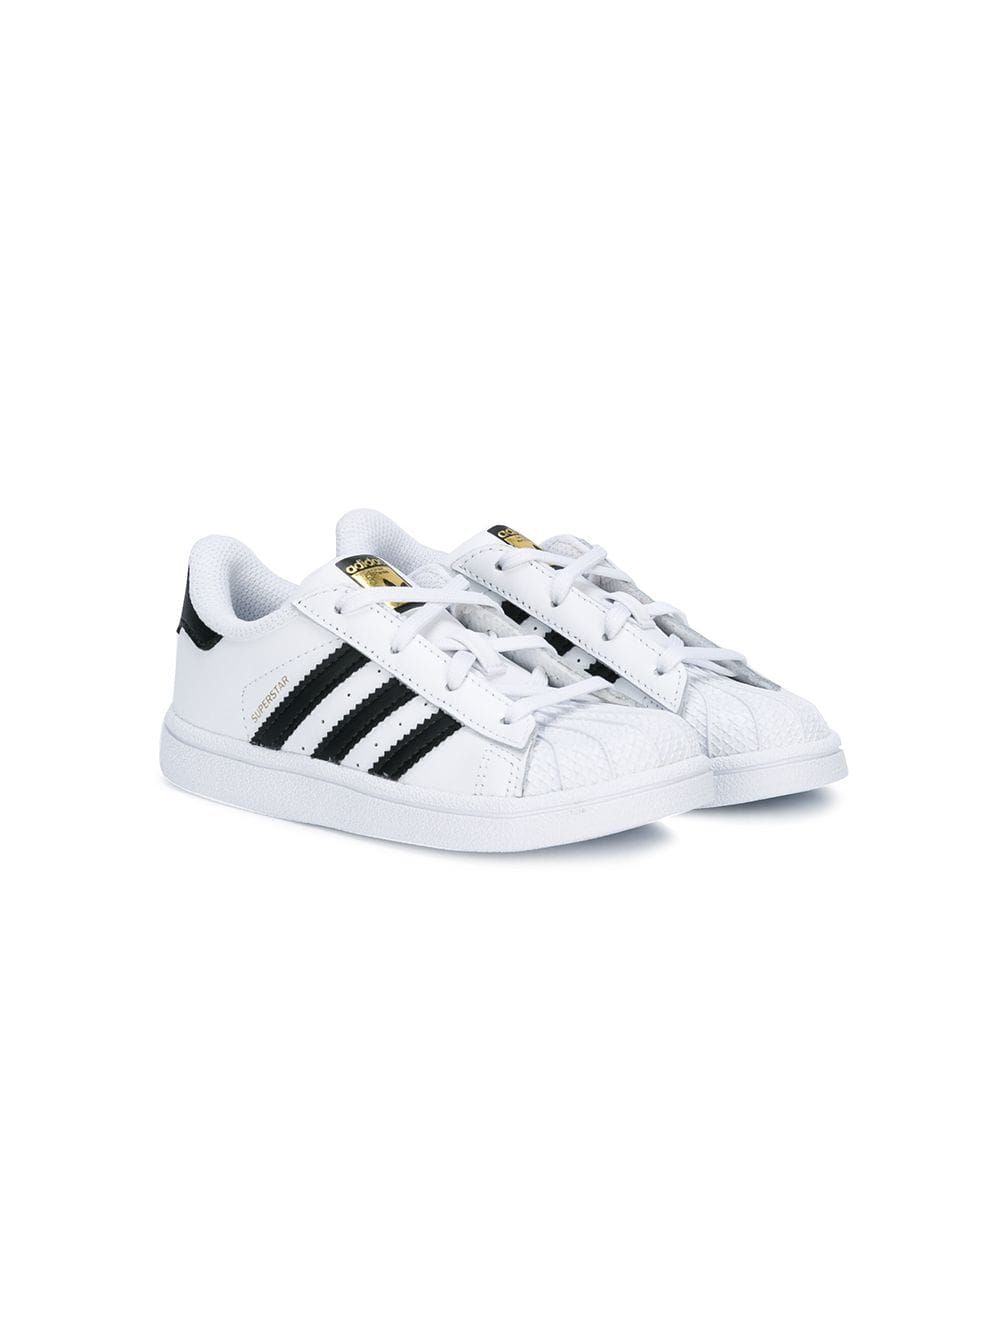 buy popular 1bf1f 9b29a Adidas Kids Superstar sneakers - White | Products in 2019 ...